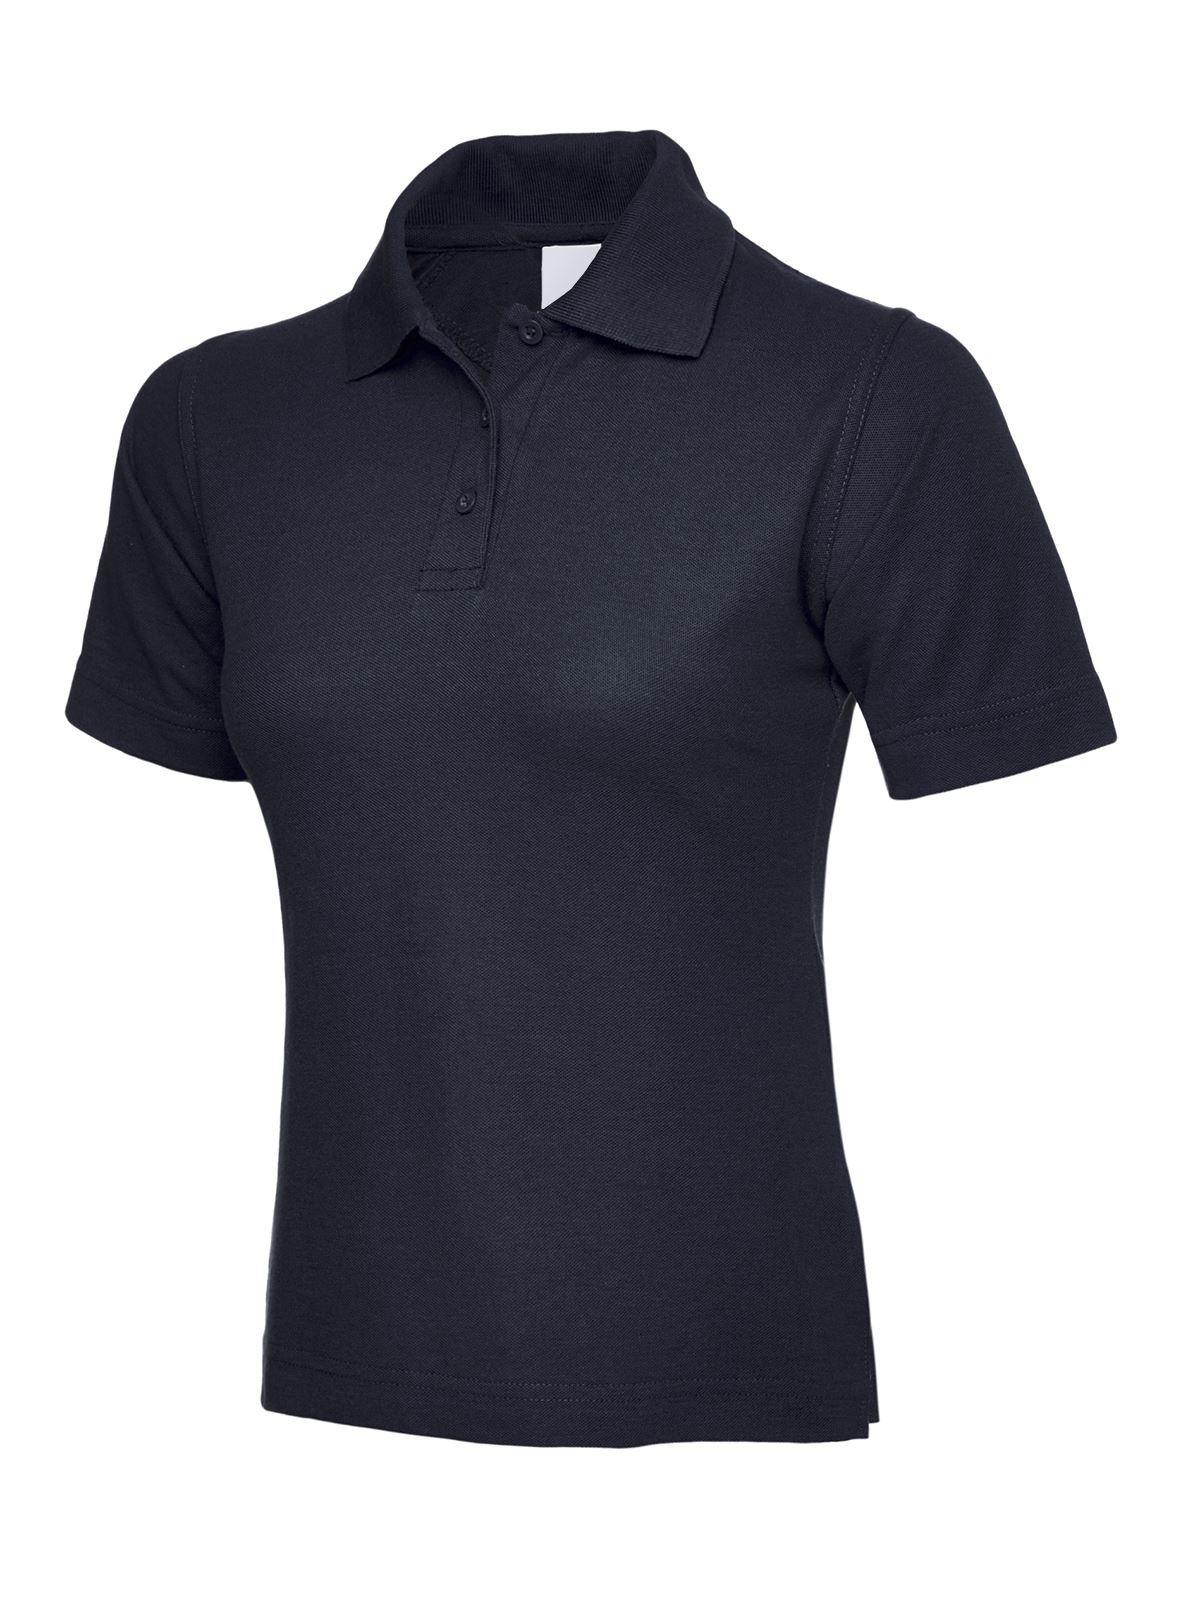 ladies classic poloshirt plain short sleeve top summer t shirt polo shirt lot ebay. Black Bedroom Furniture Sets. Home Design Ideas